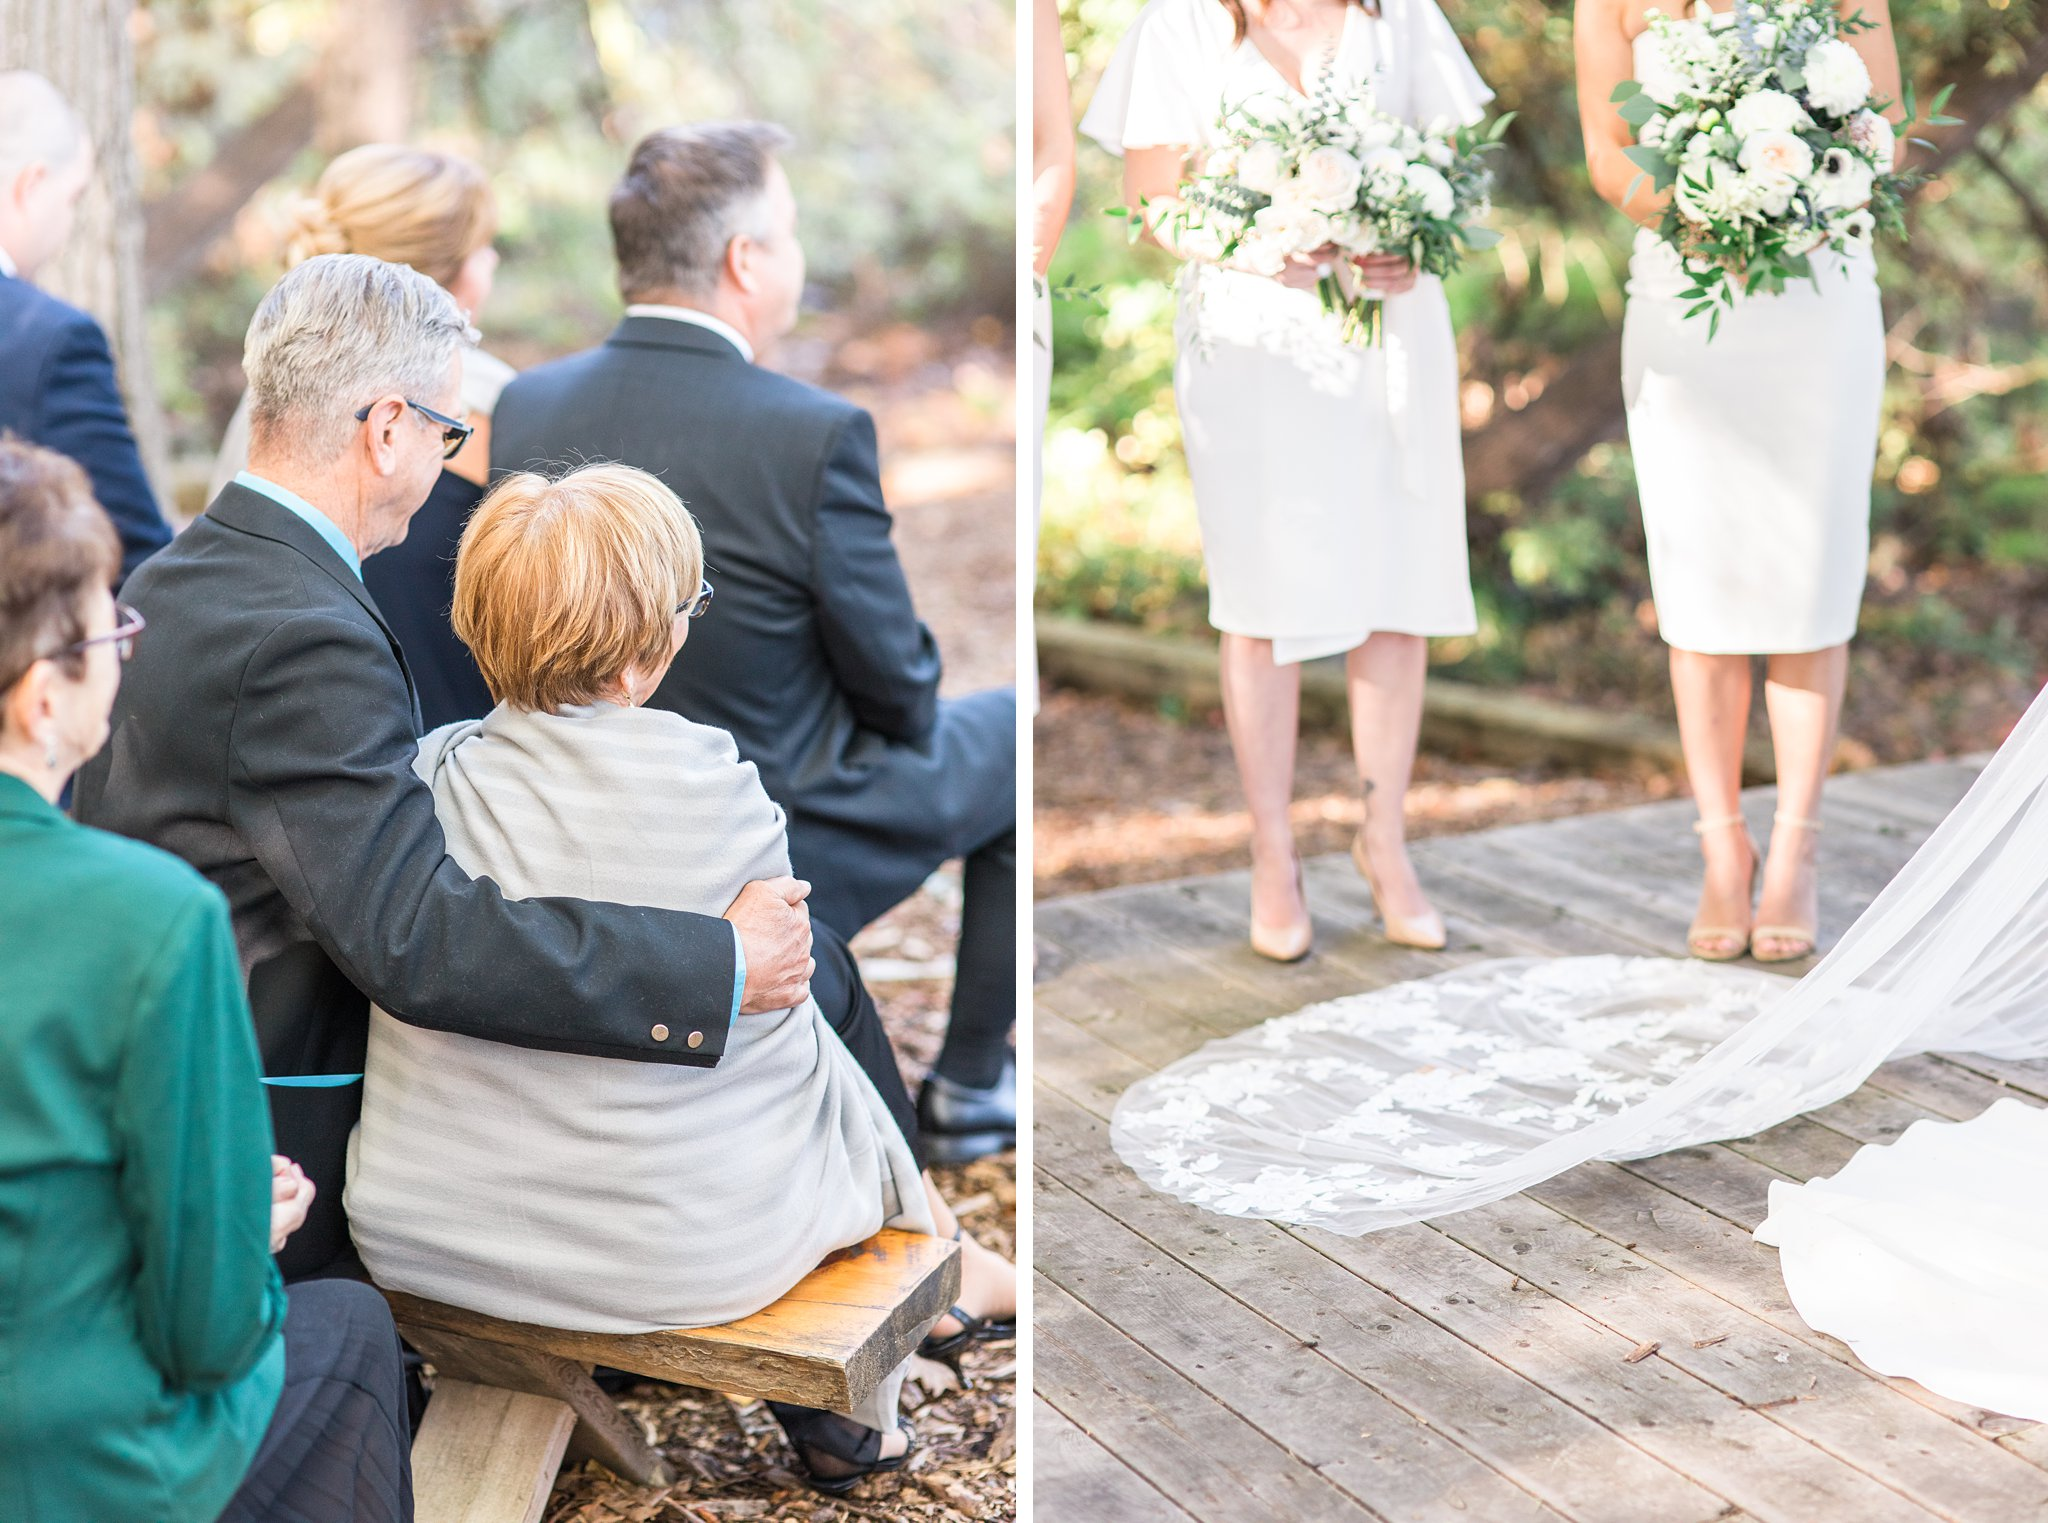 Warm blankets for the guests at the ceremony, Opinicon Wedding Photos by Amy Pinder Photography